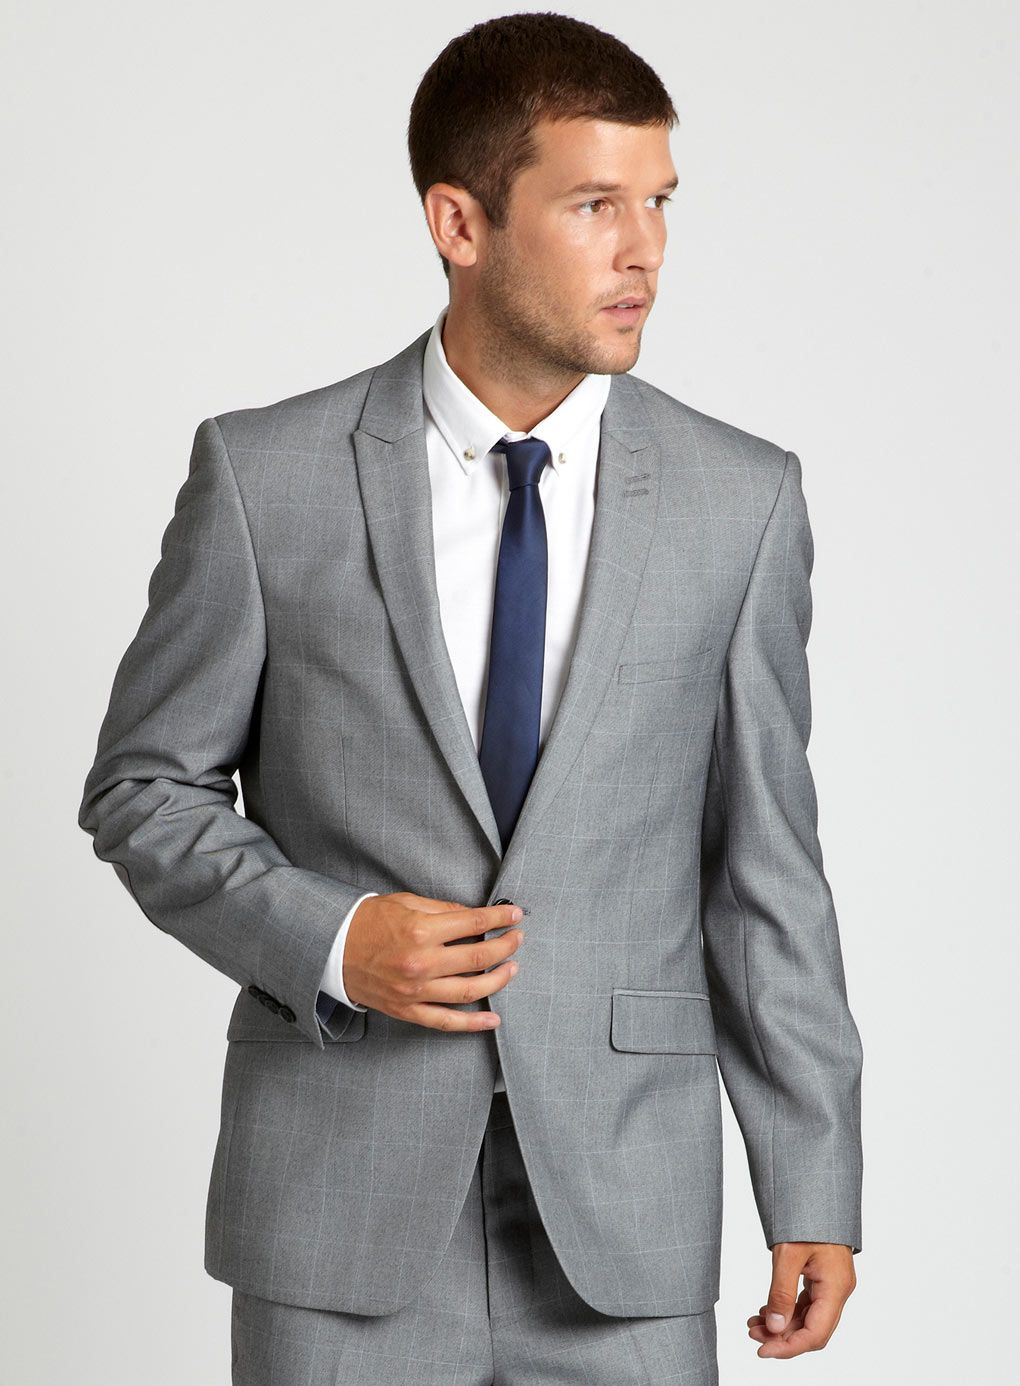 grey suit shirt tie color combinations , Google Search